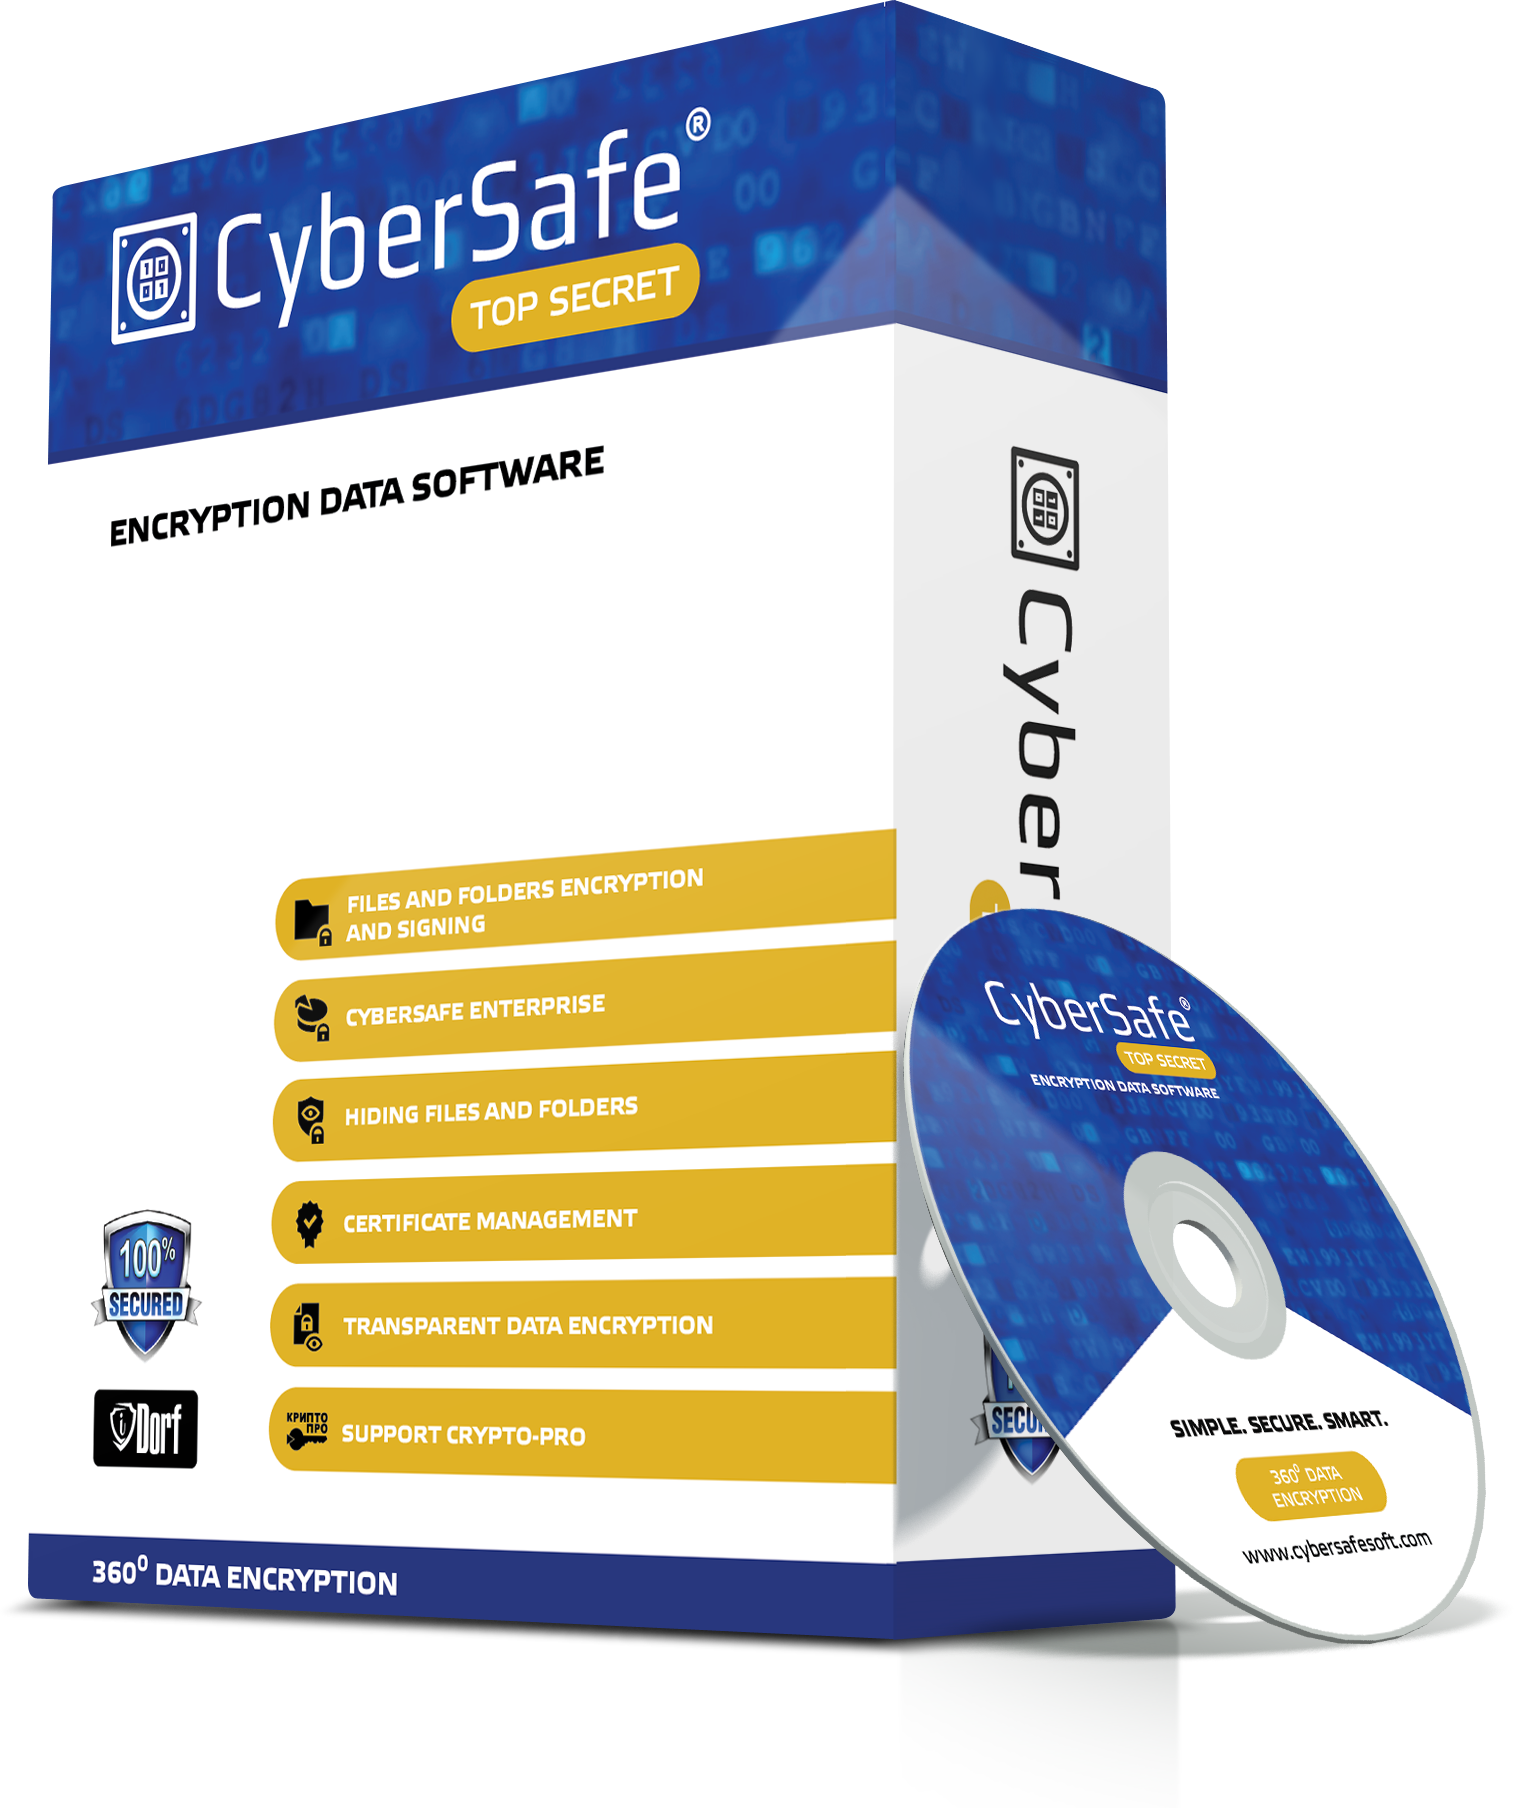 CyberSafe Top Secret 2